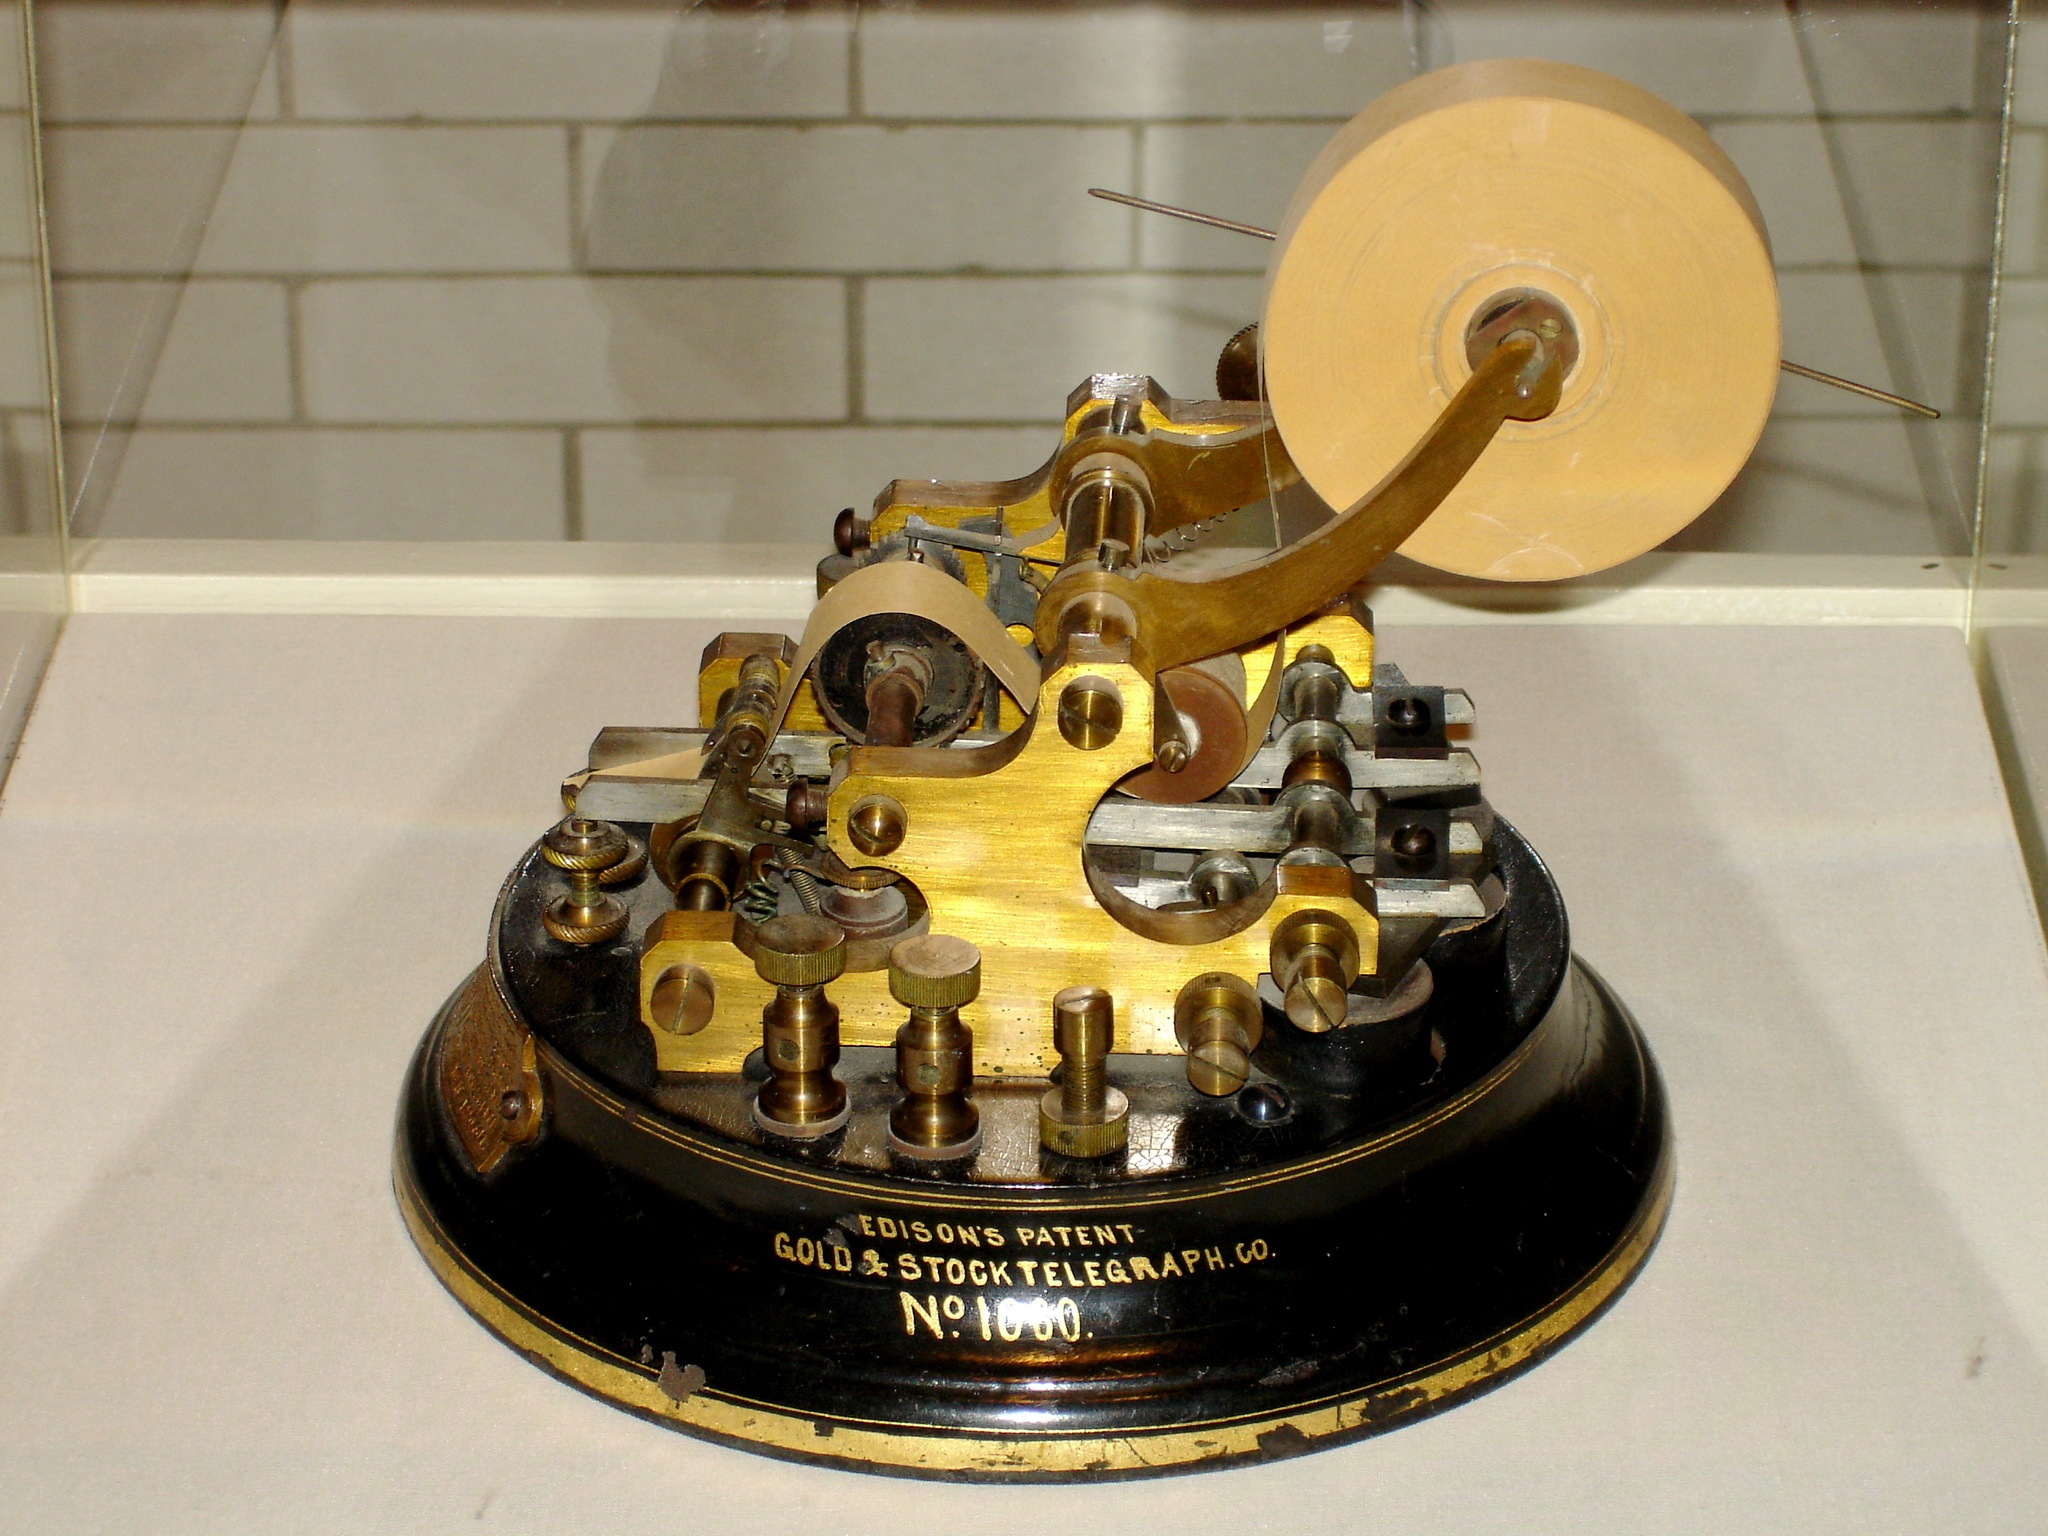 Photo Stock Edison gold amp stock ticker